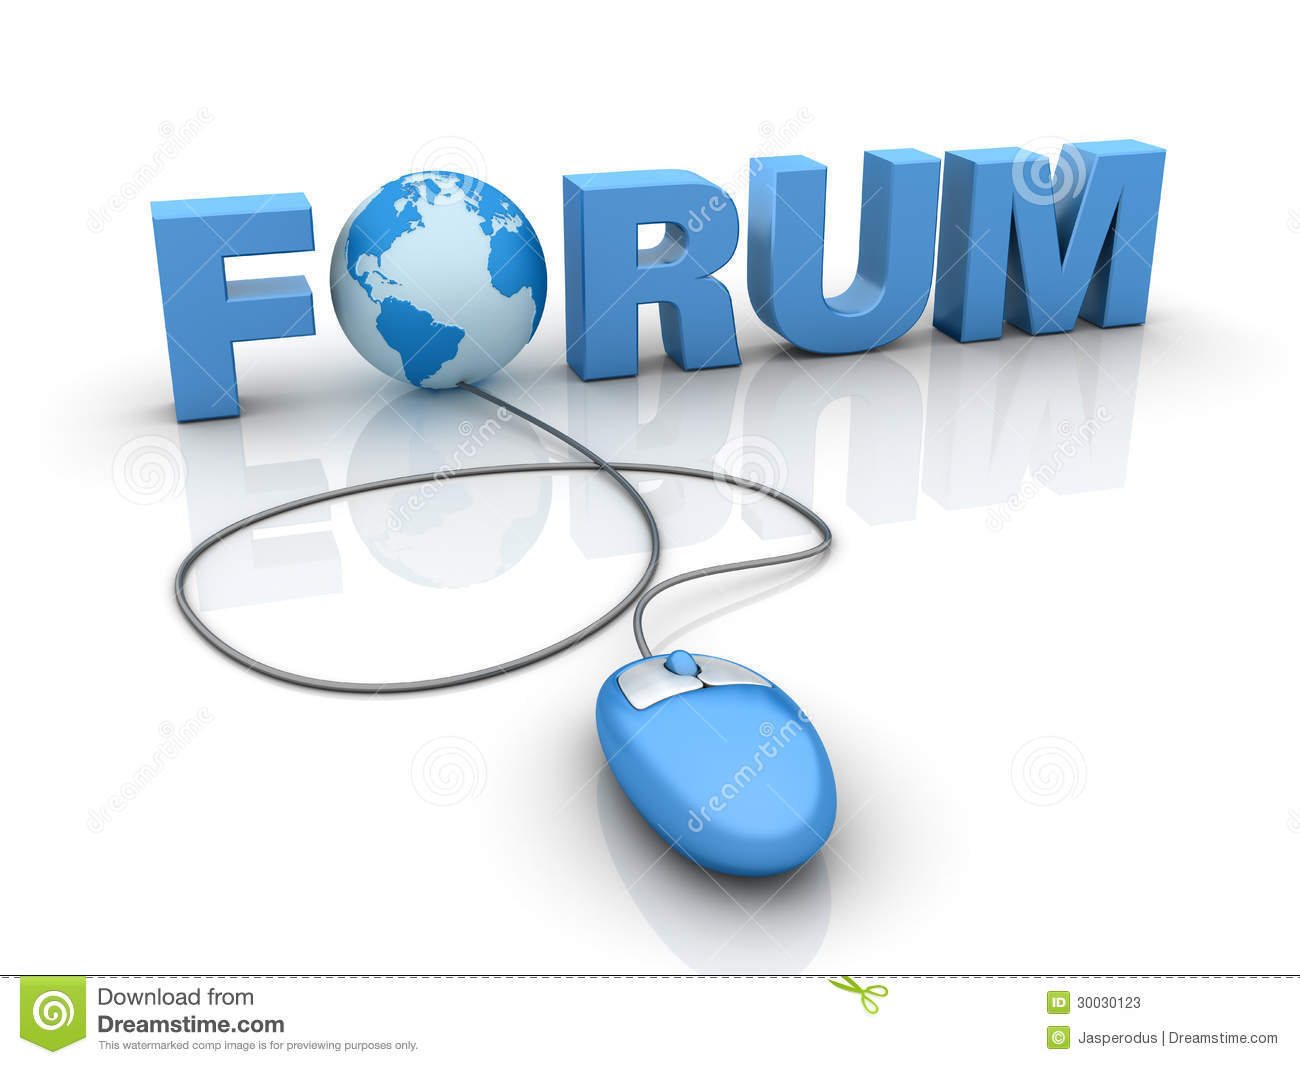 internet forum stock photos image 30030123 free clipart of computer lab free clipart of computer crash